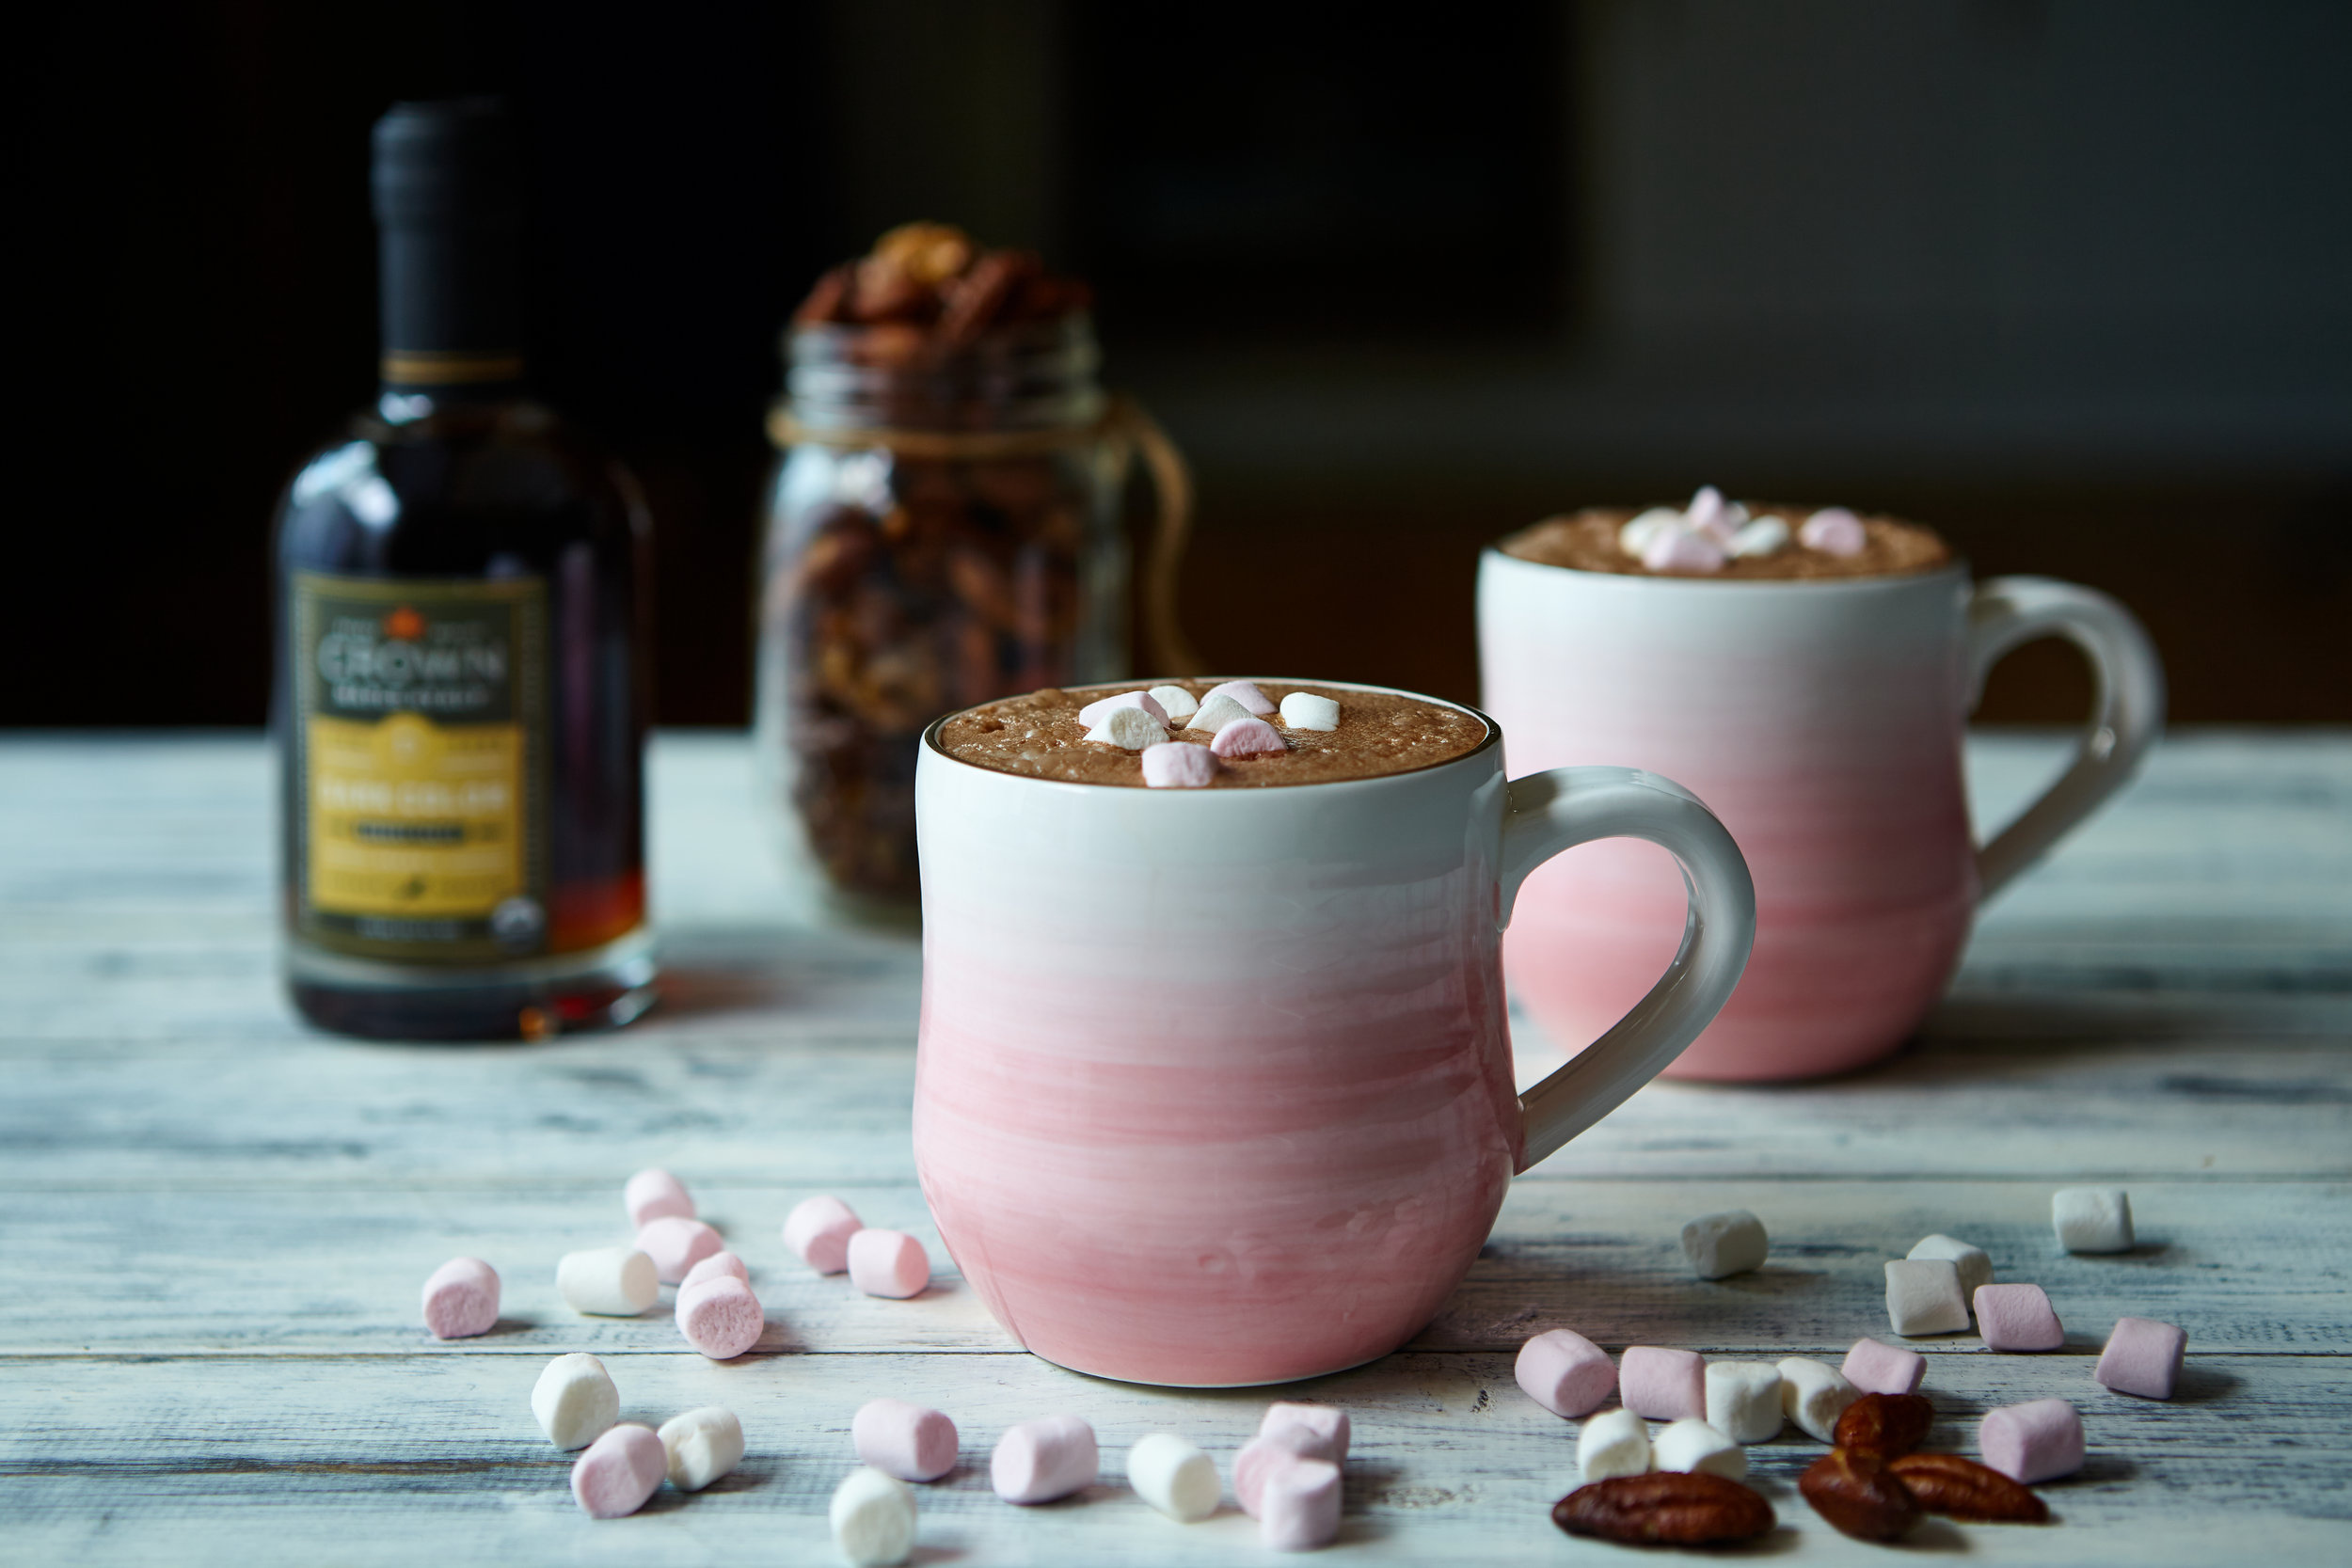 The Real Maple Creations Hot Cocoa